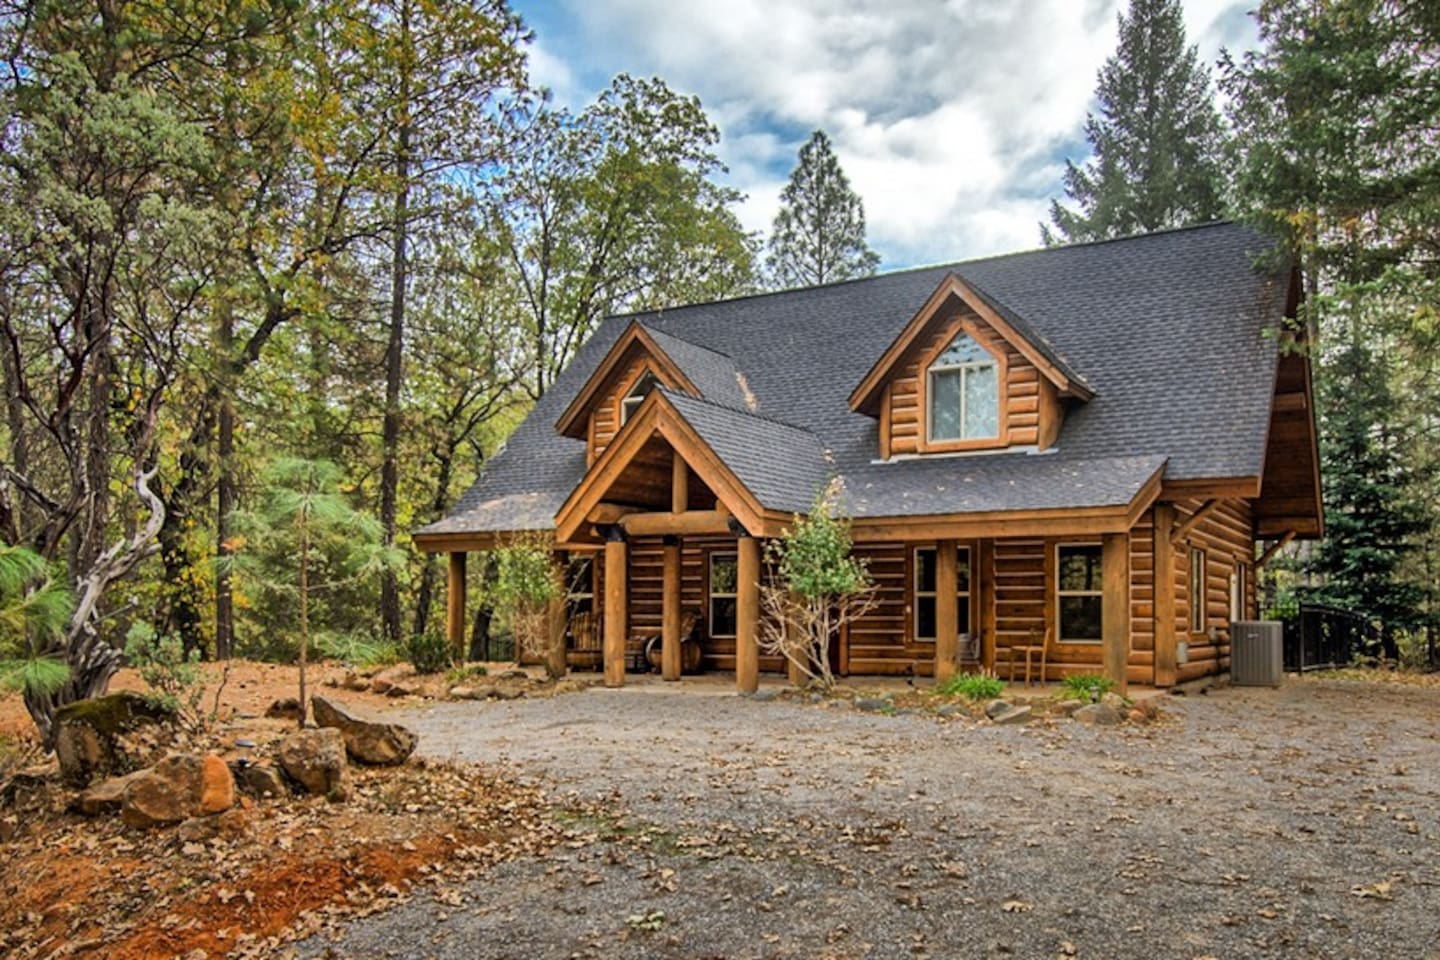 Less than a mile from the shore from beautiful Shasta Lake. Private, quiet, nestled in the woods luxury log cabin.